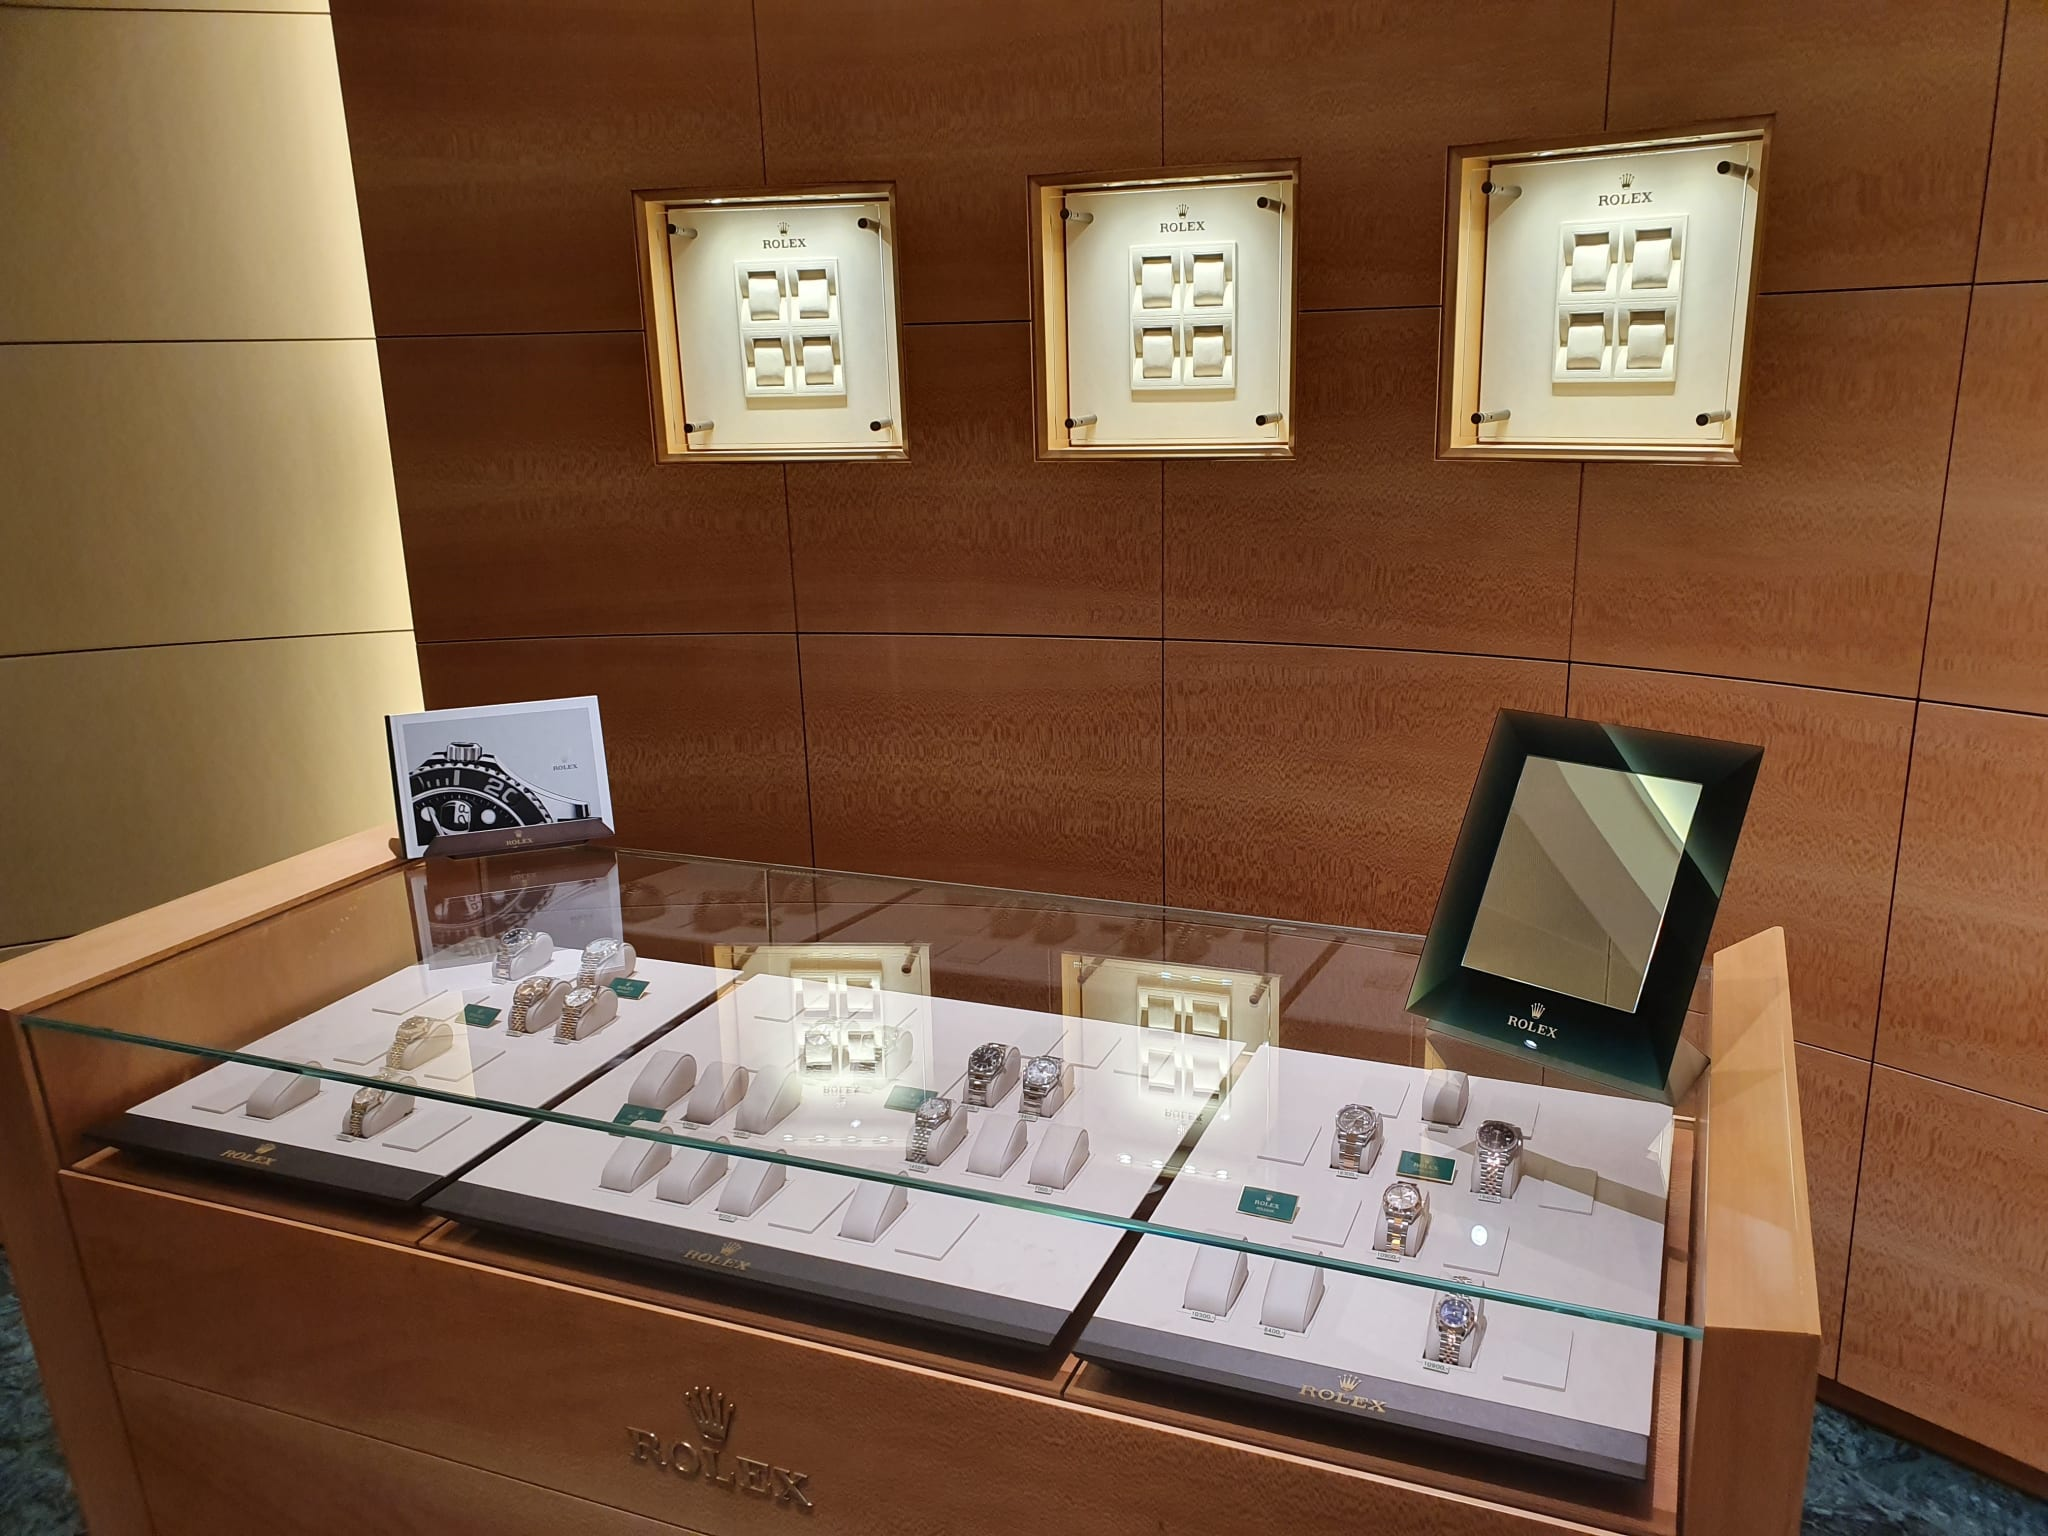 Rolex empty cabinets